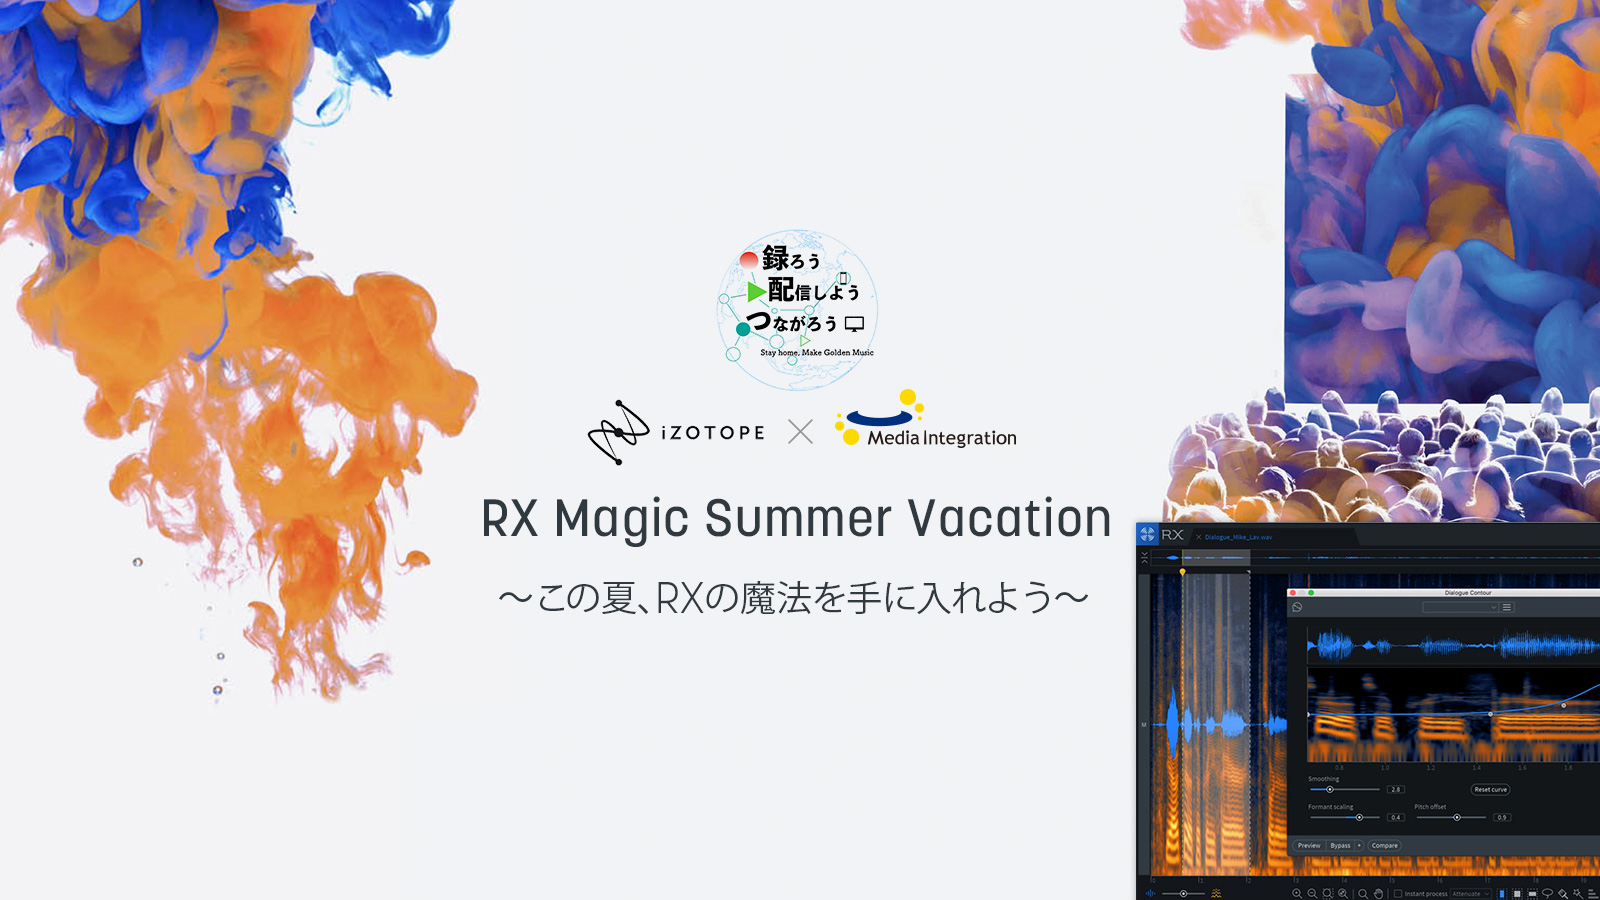 iZotope『RX Magic Summer Vacation』